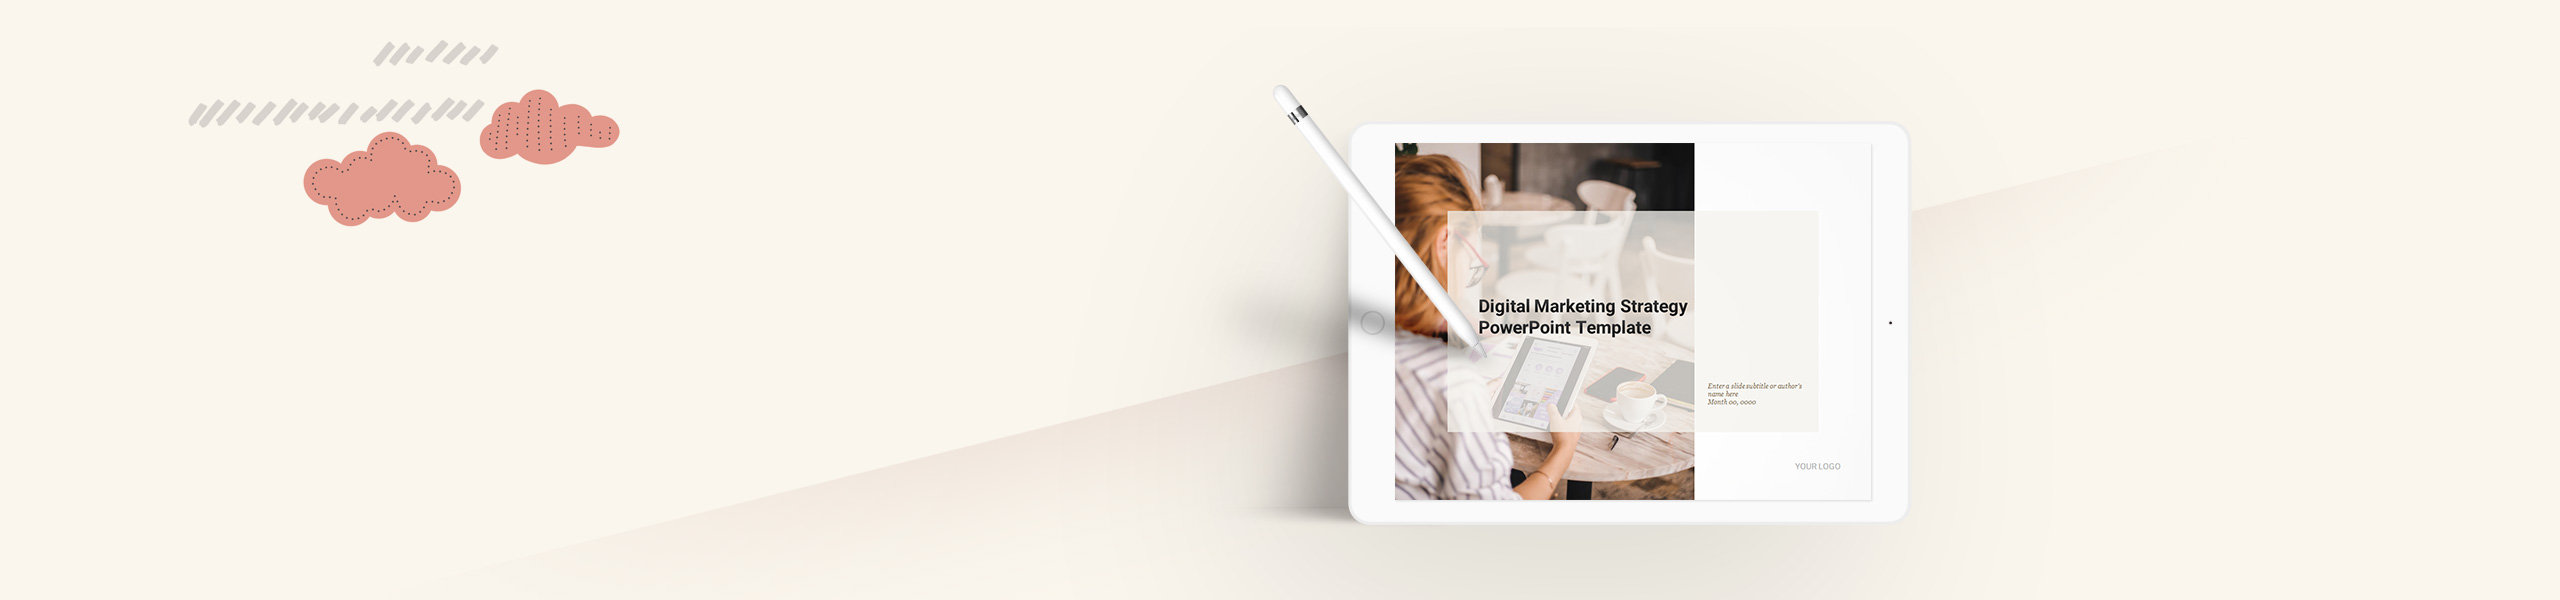 main_Digital Marketing Strategy